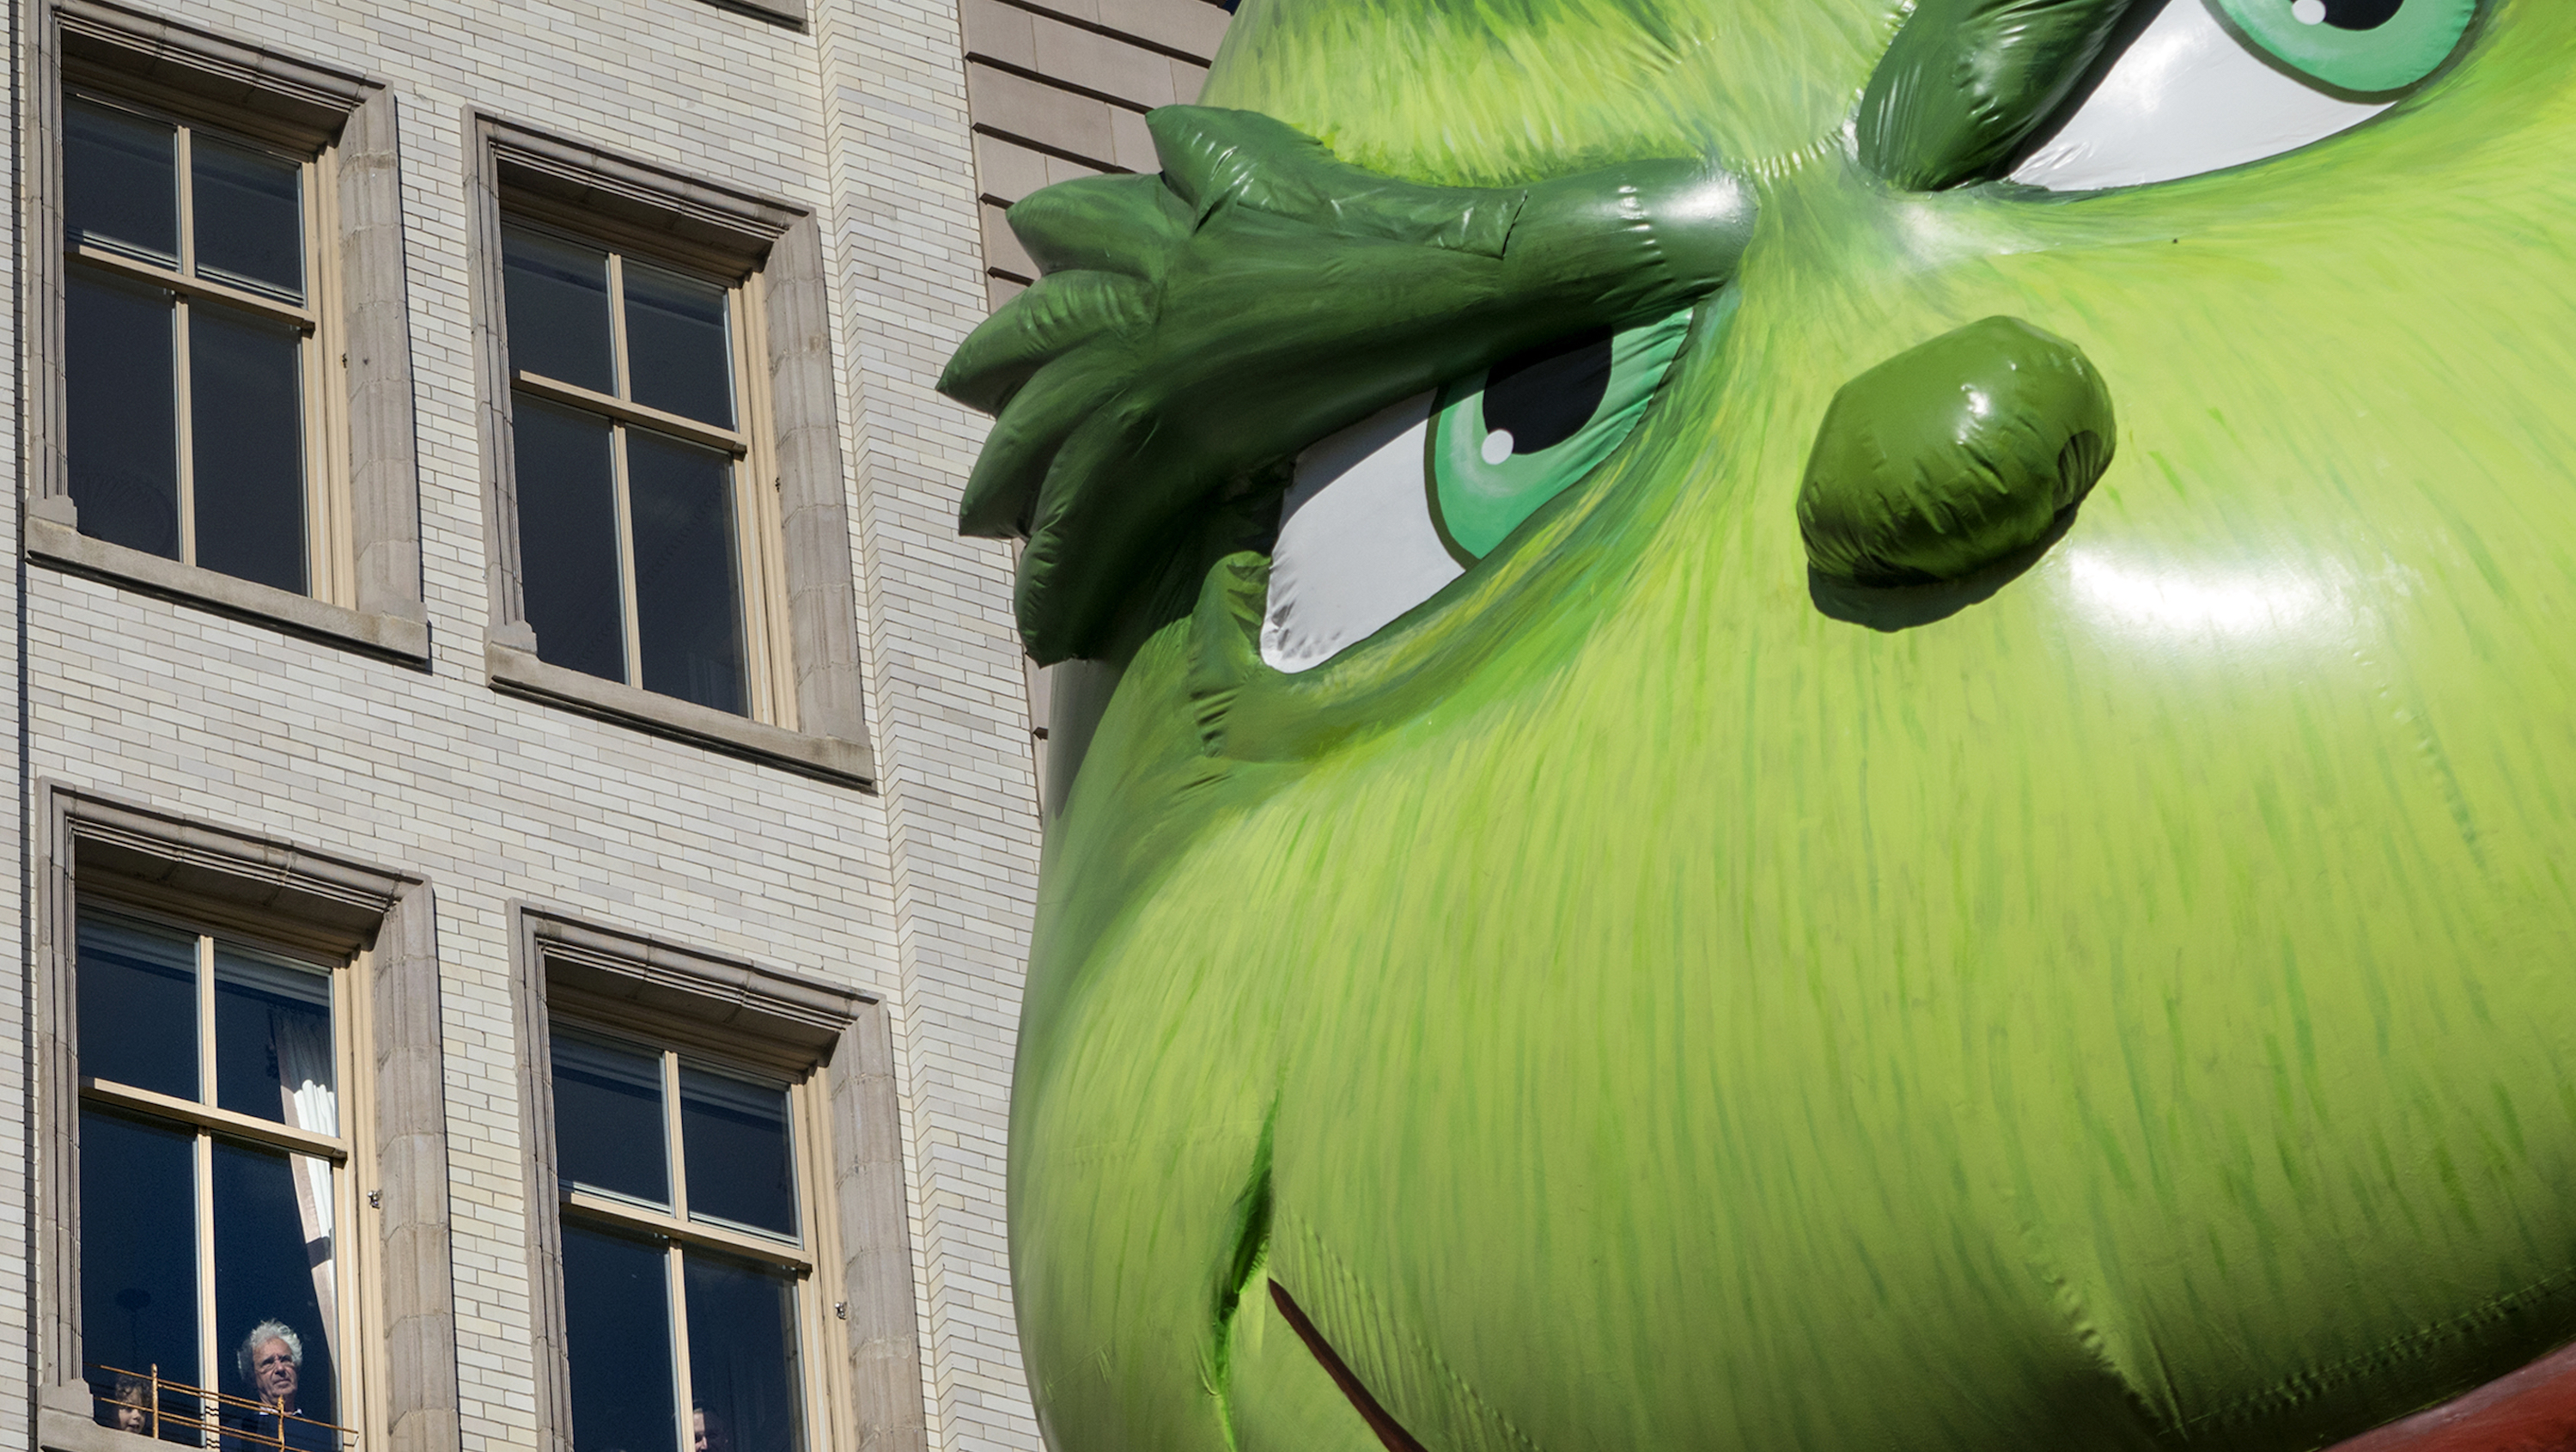 The Grinch balloon passes by windows of a building on Central Park West during Macy's Thanksgiving Day Parade in New York Thursday, Nov. 23, 2017.